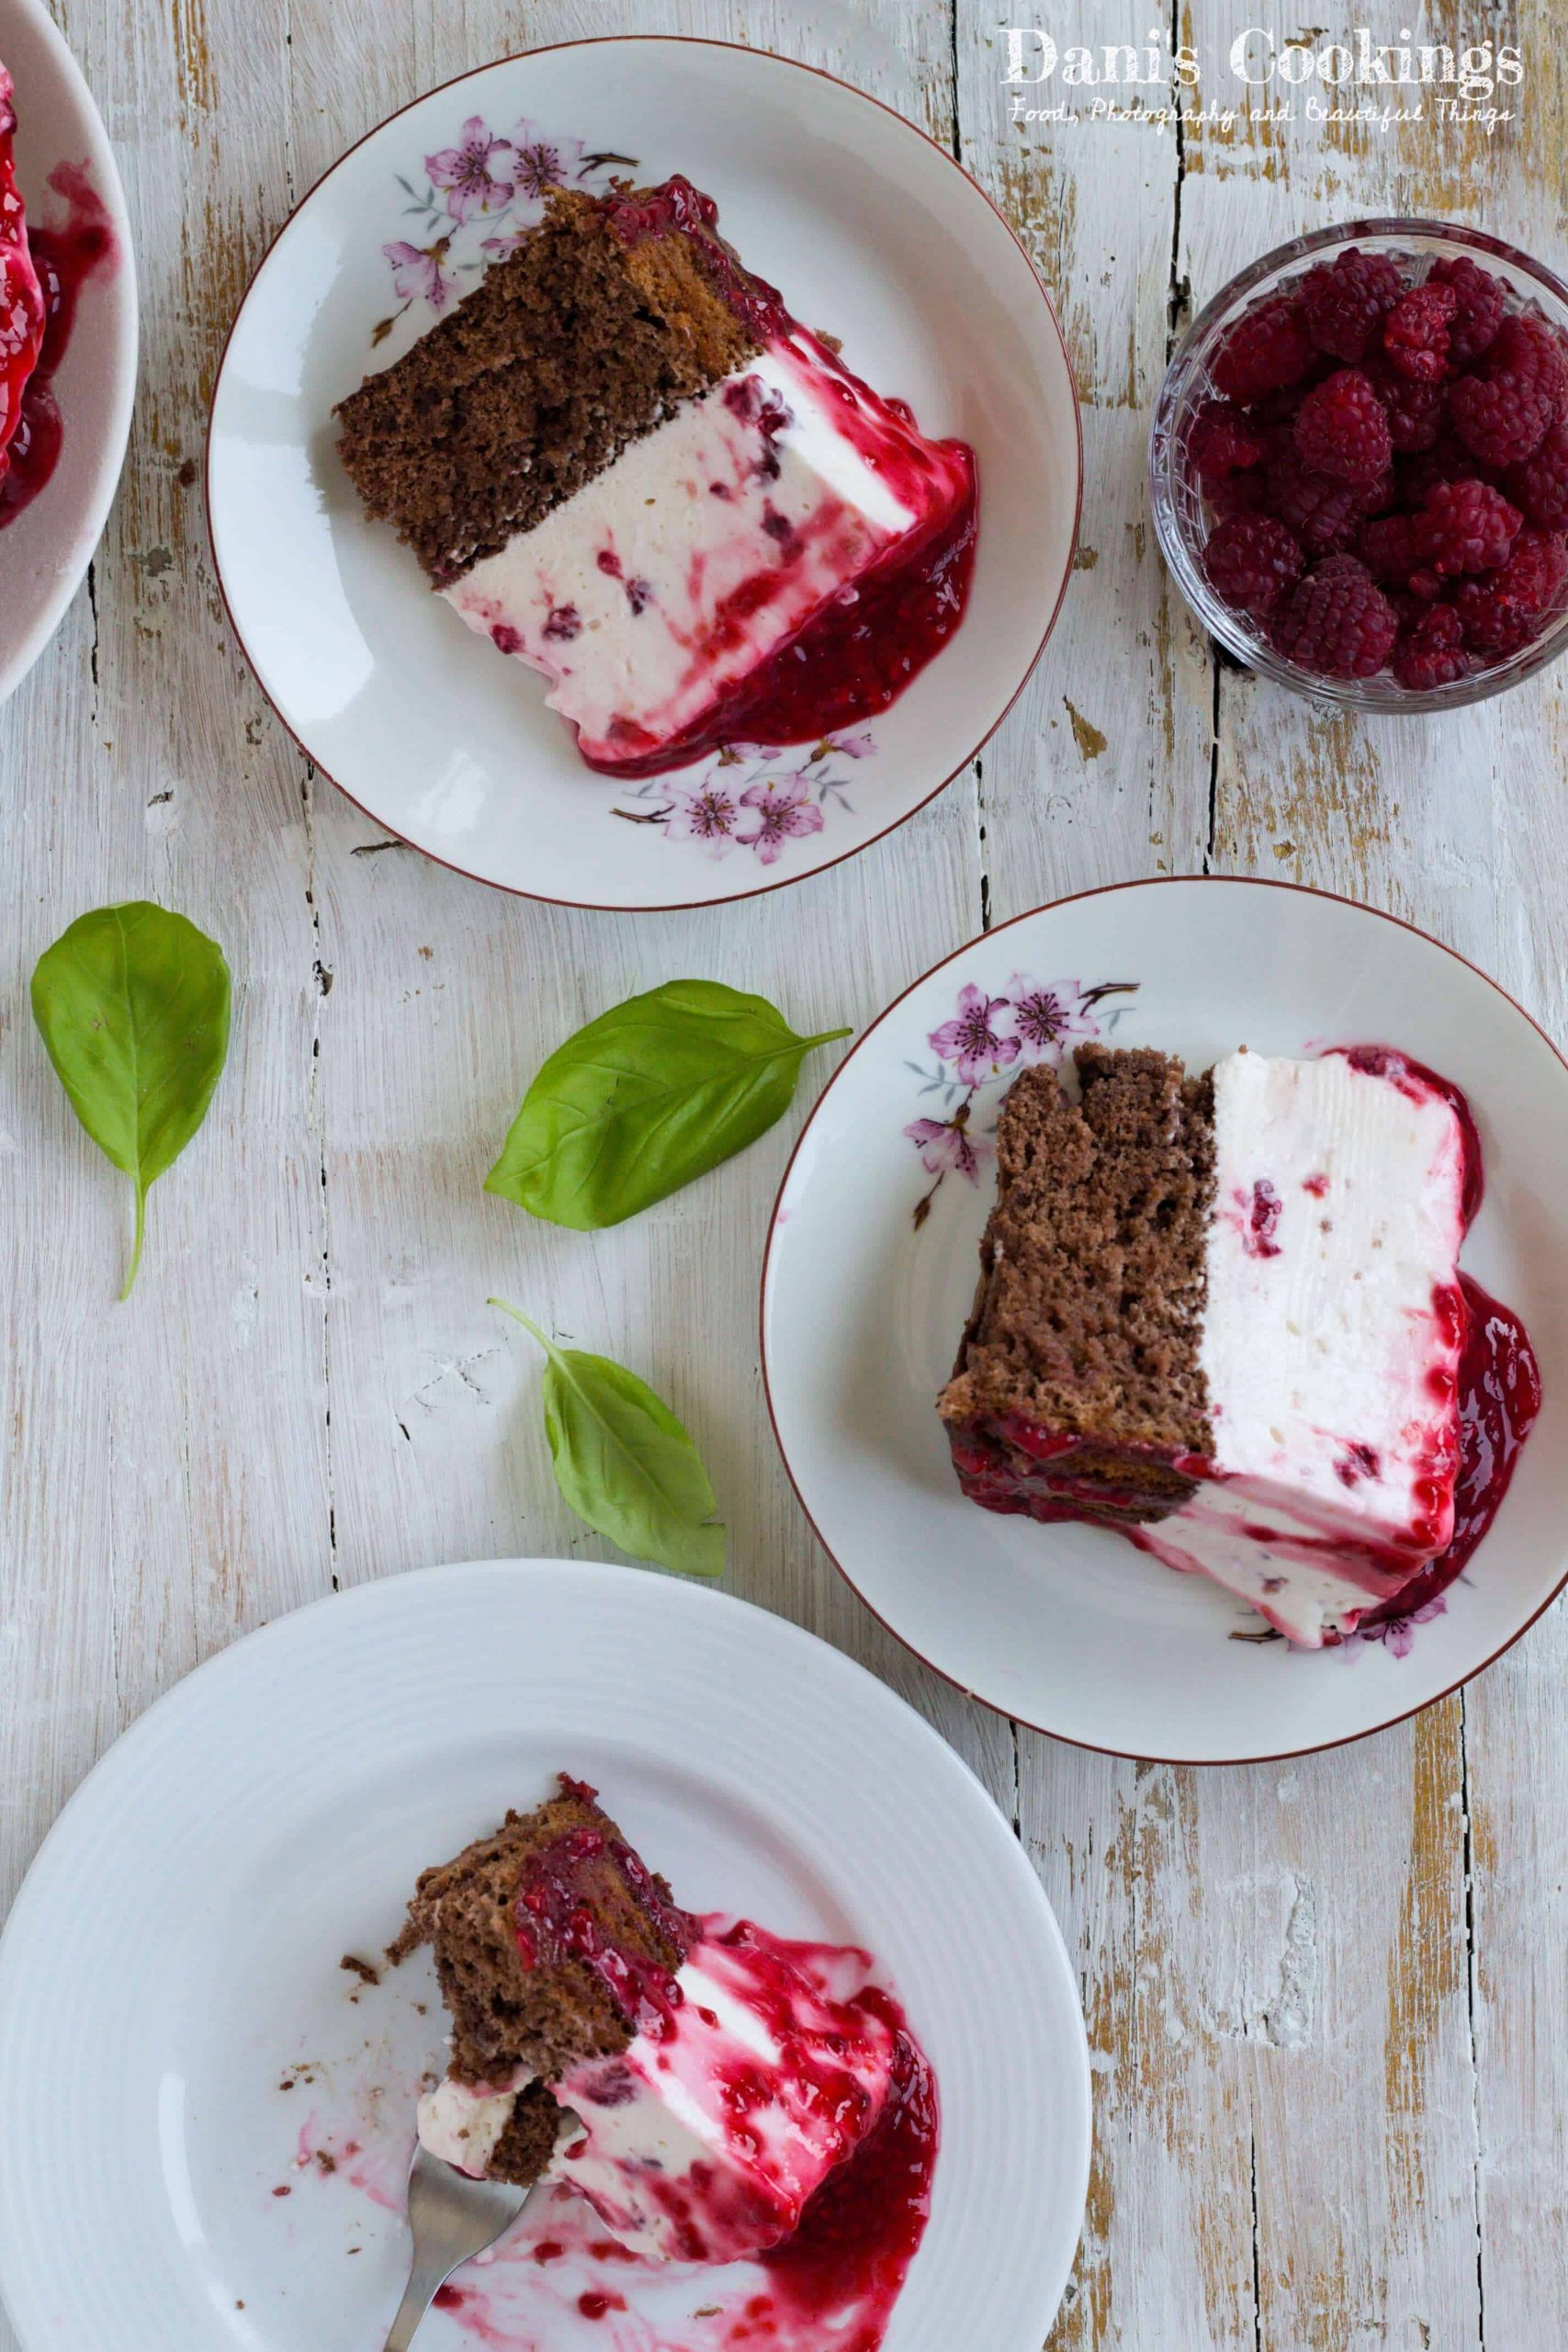 three slices of raspberry cheesecake on a table, one eaten